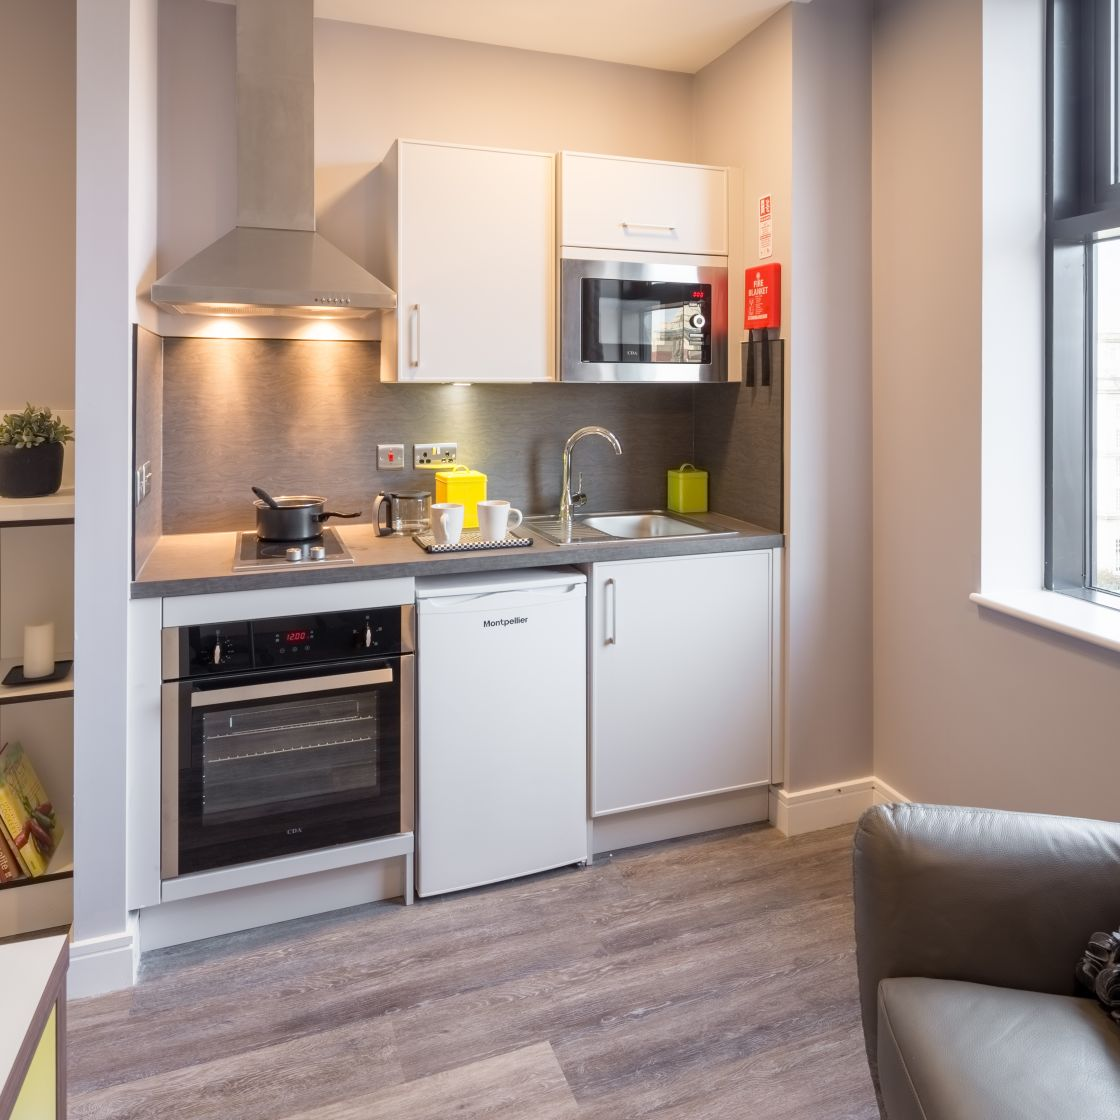 Smart Student Apartment in Liverpool. fully fitted kitchen. IconInc, The Ascent